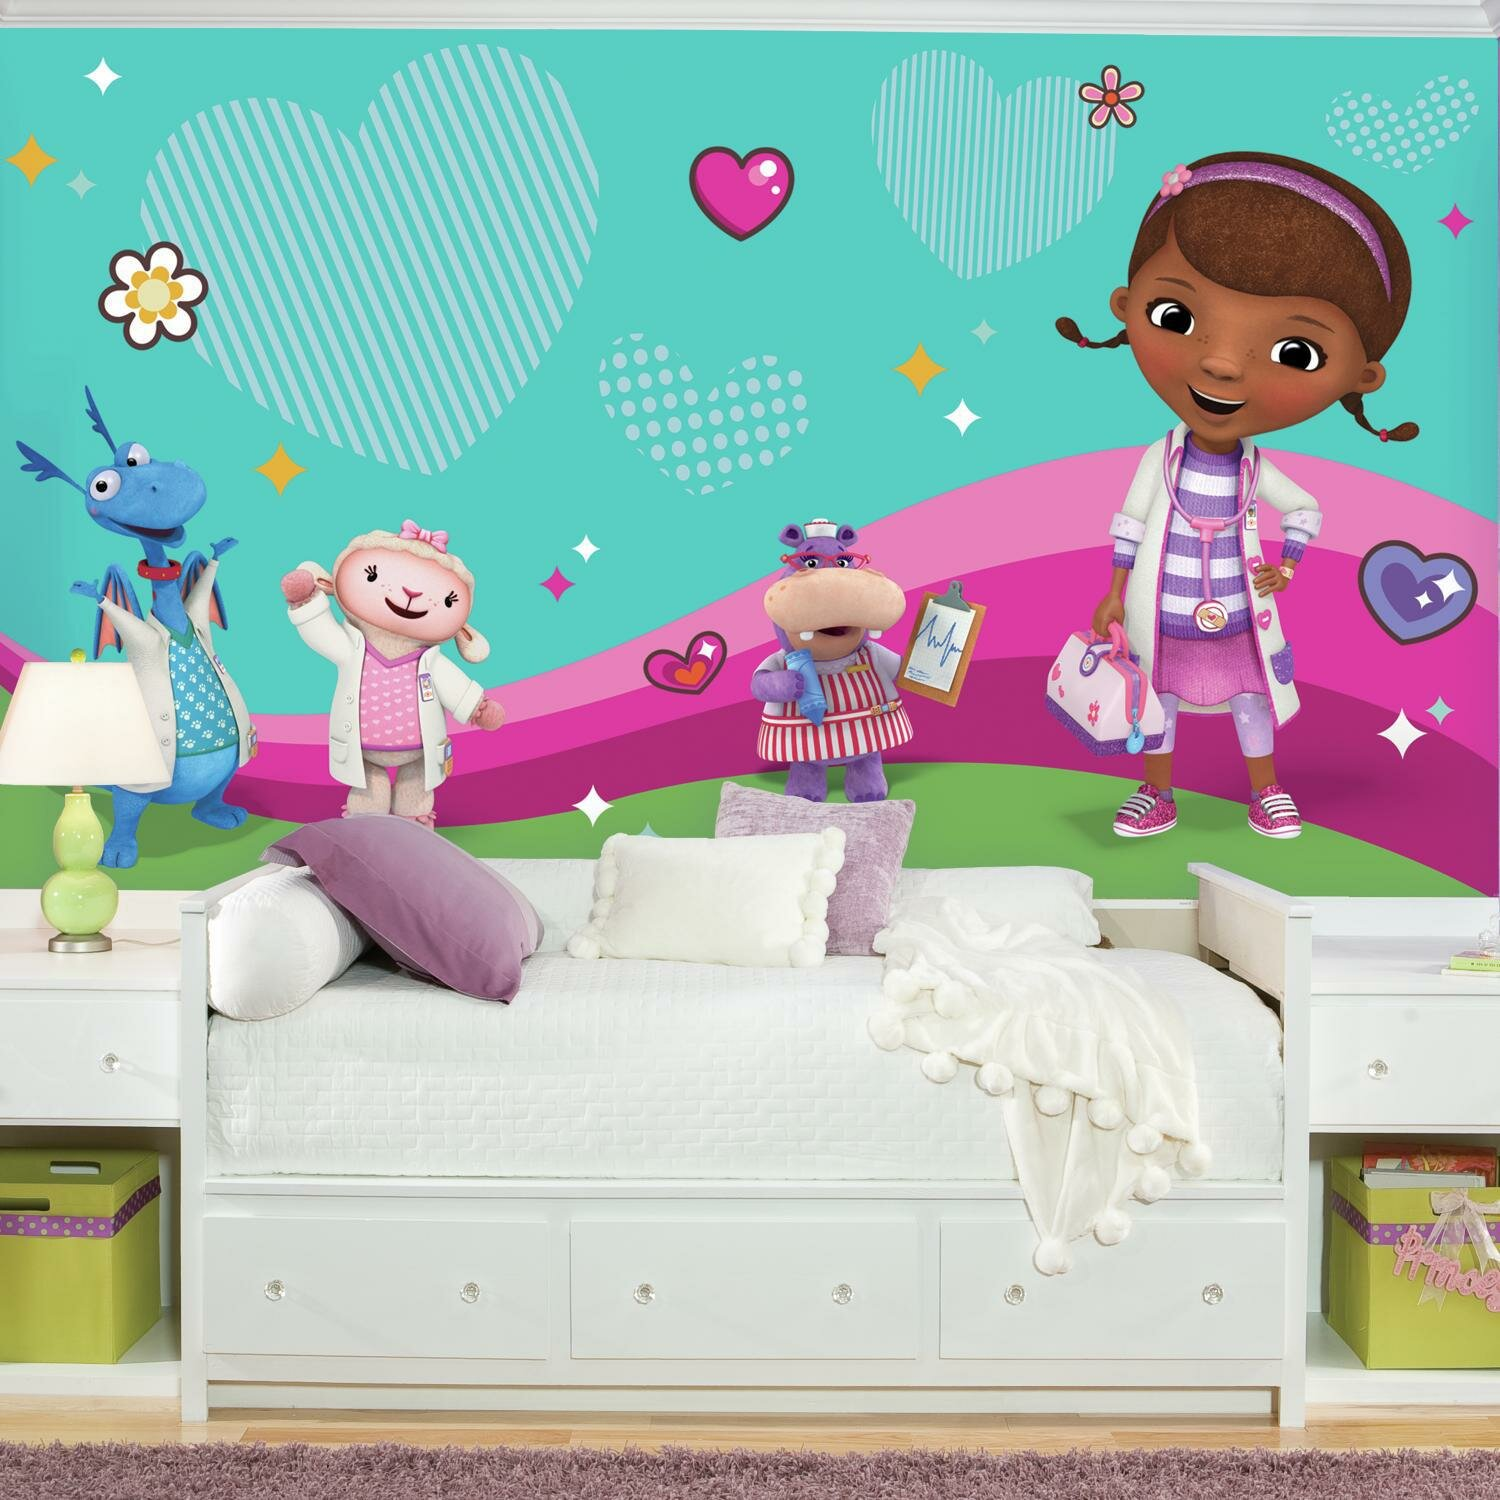 Room Mates Doc Mcstuffins And Friends Chair Rail Prepasted 10 5 X 72 Wall Mural Wayfair